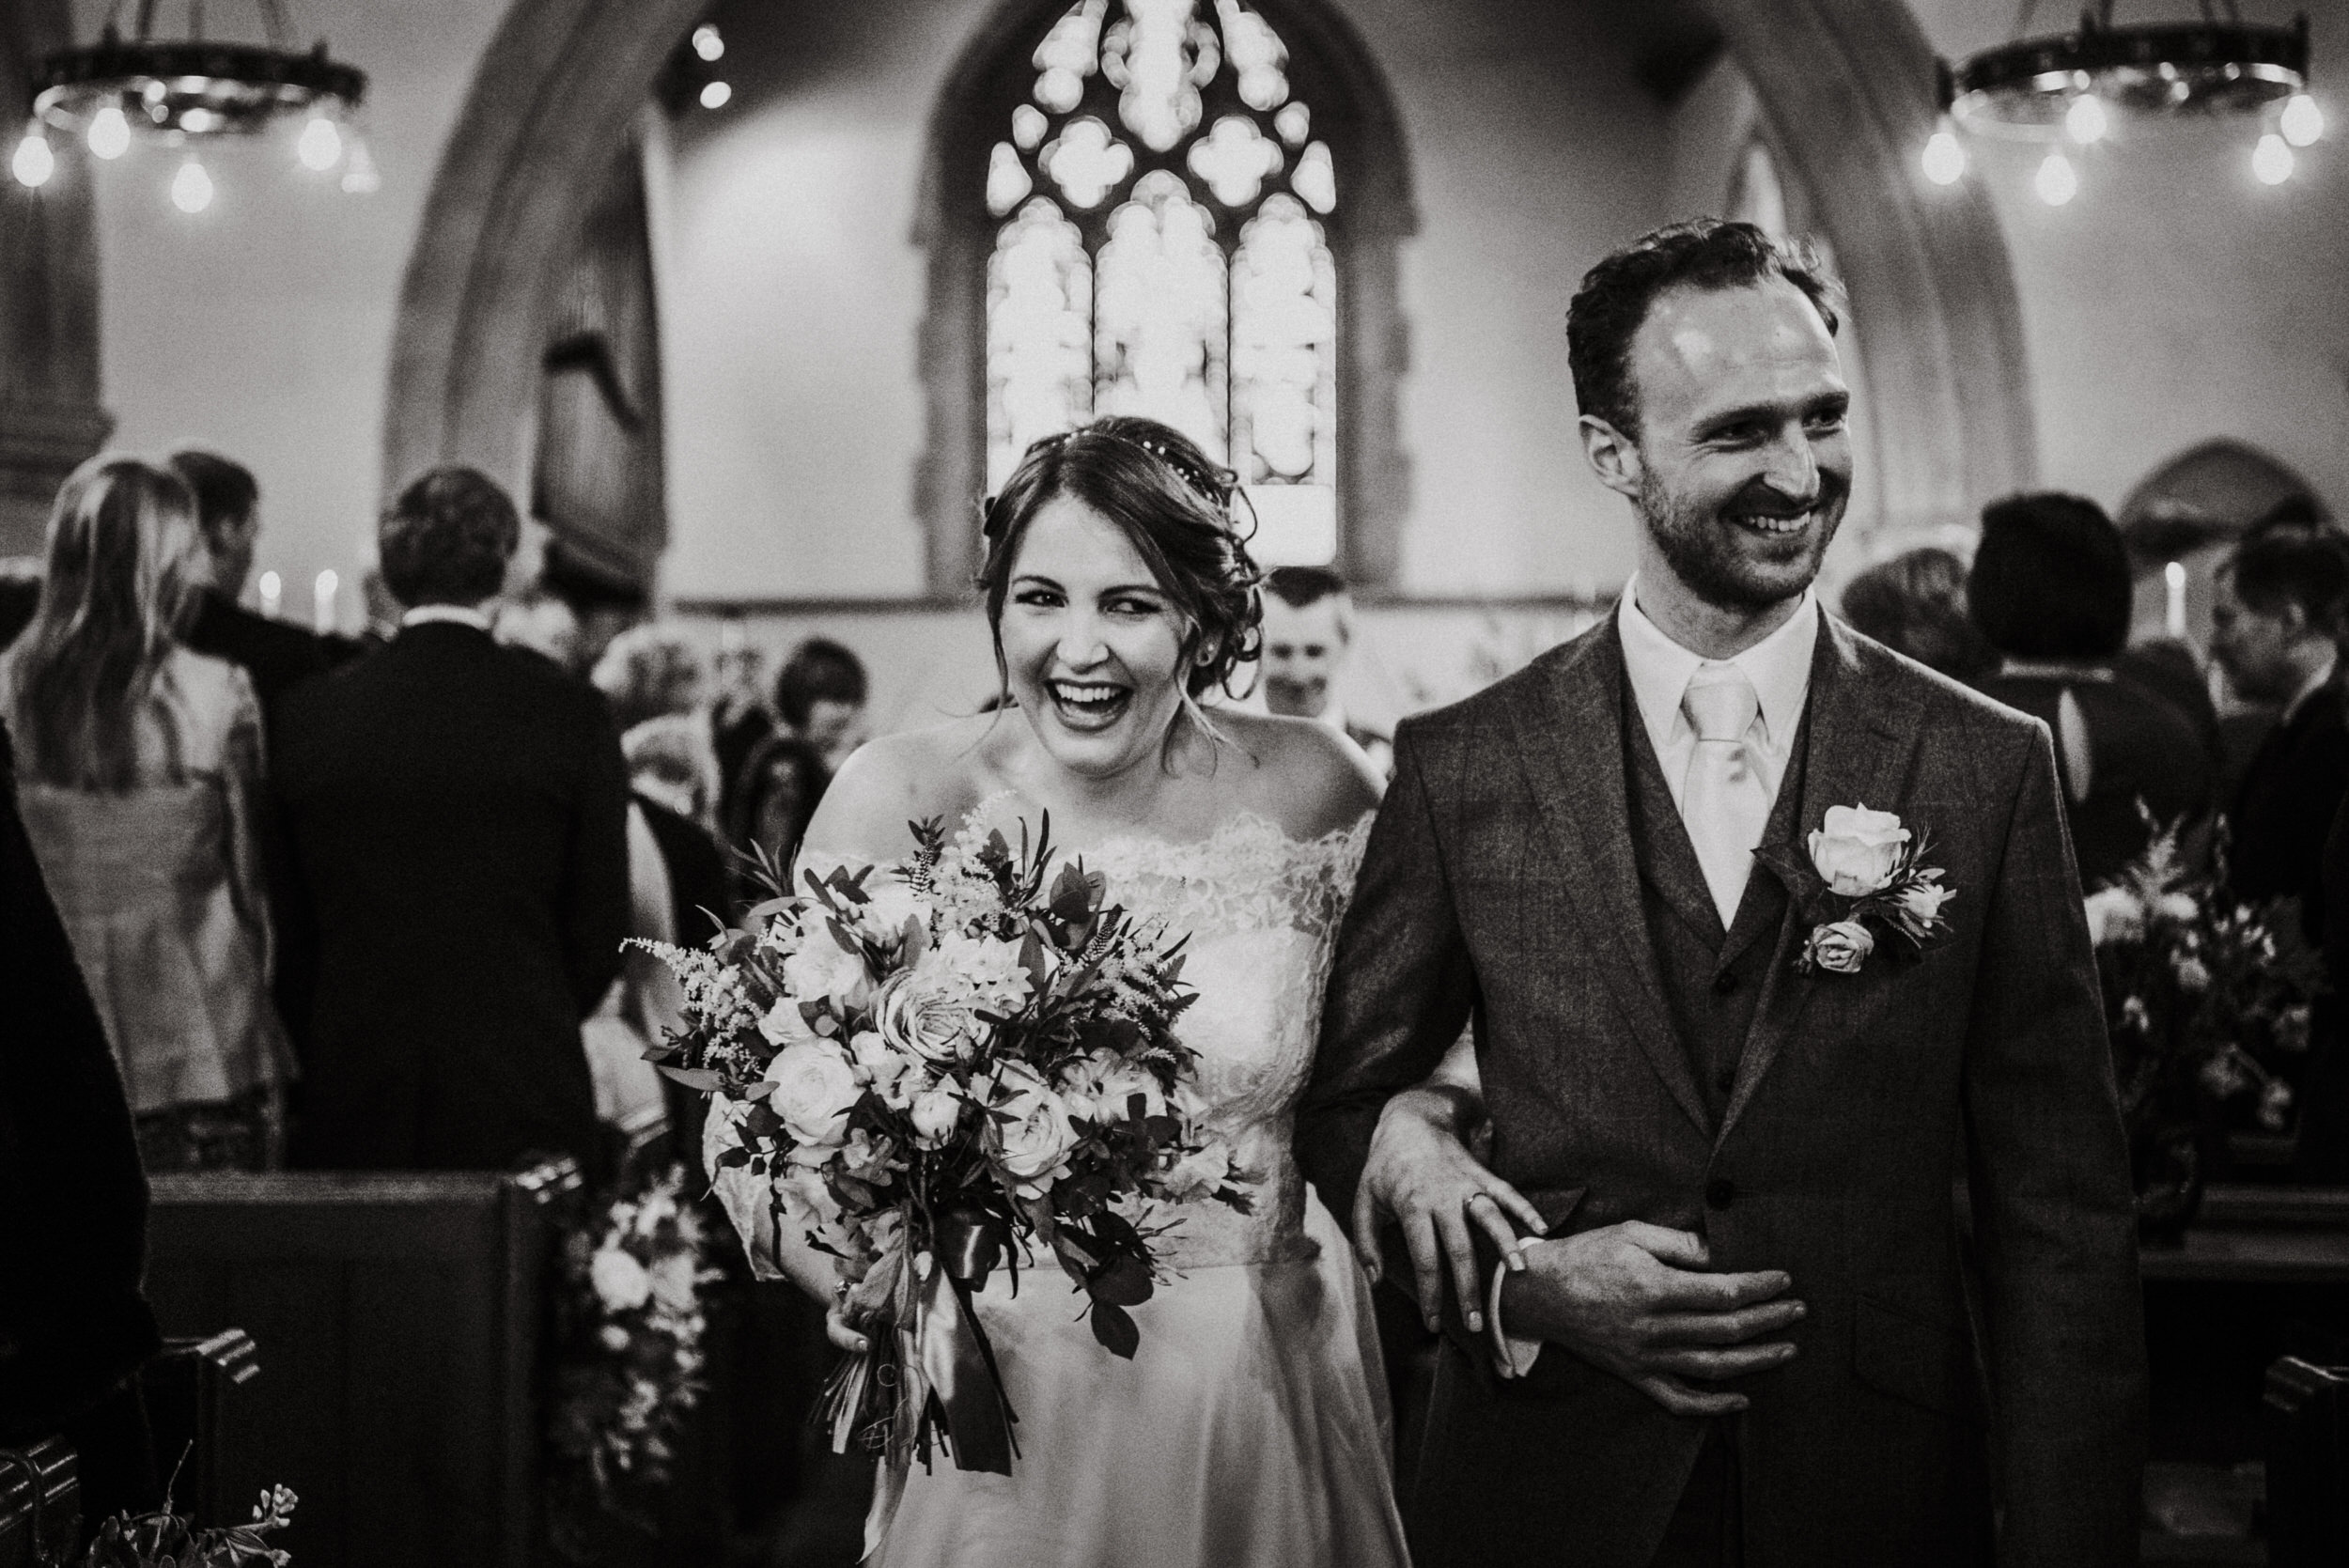 John&Nora - Lou was the most organised element of our wedding. We barely noticed her during the day but she captured all the most important moments with beautiful un-staged shots. She was incredibly flexible in fitting in with our plans and we would highly recommend using her for any event.Firle Place, Sussex 2018